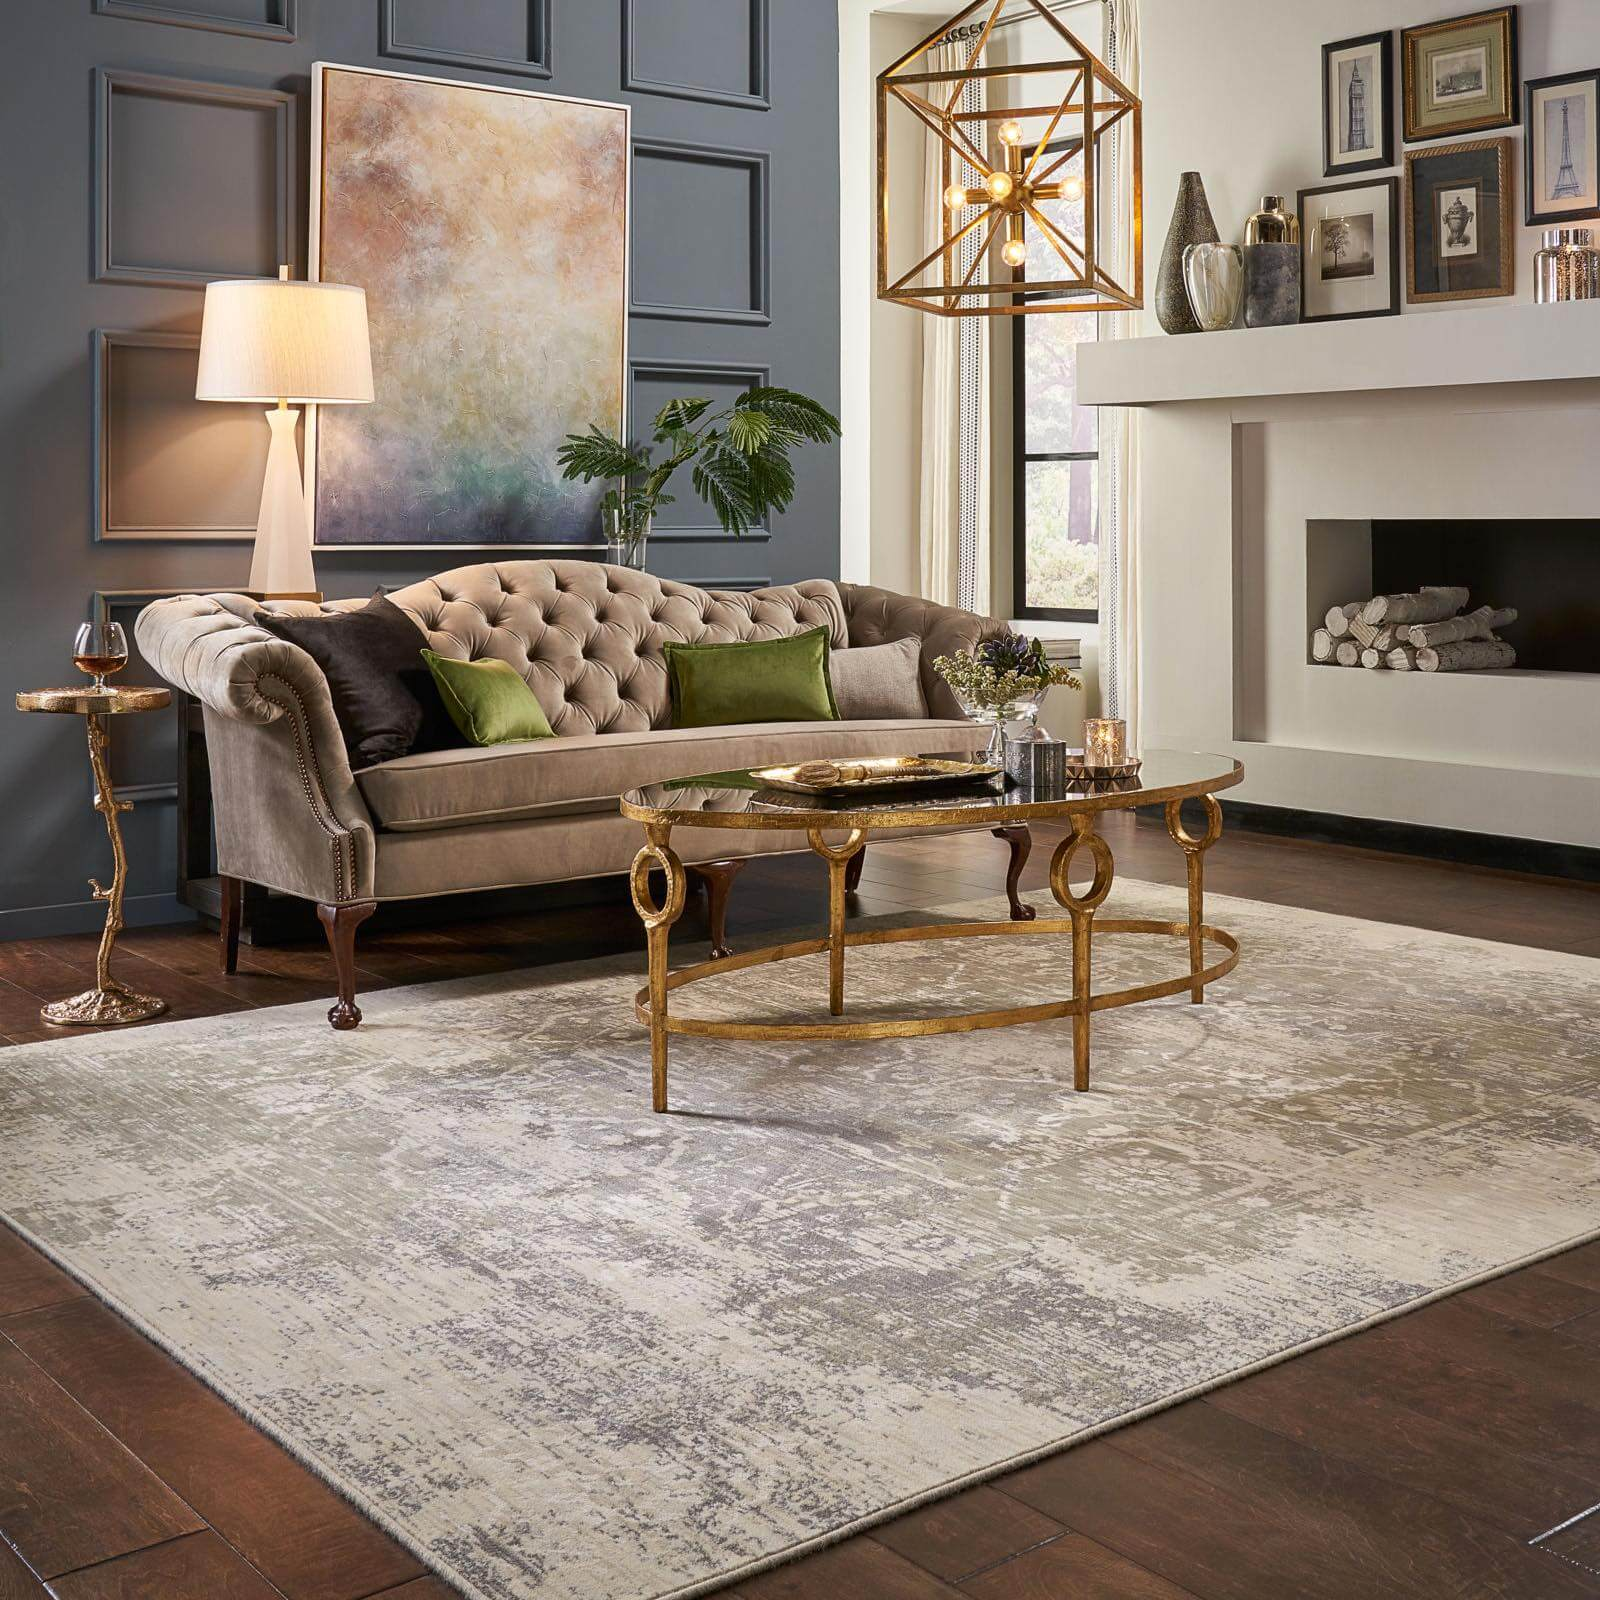 karastan_kismet_room | McSwain Carpet & Floors